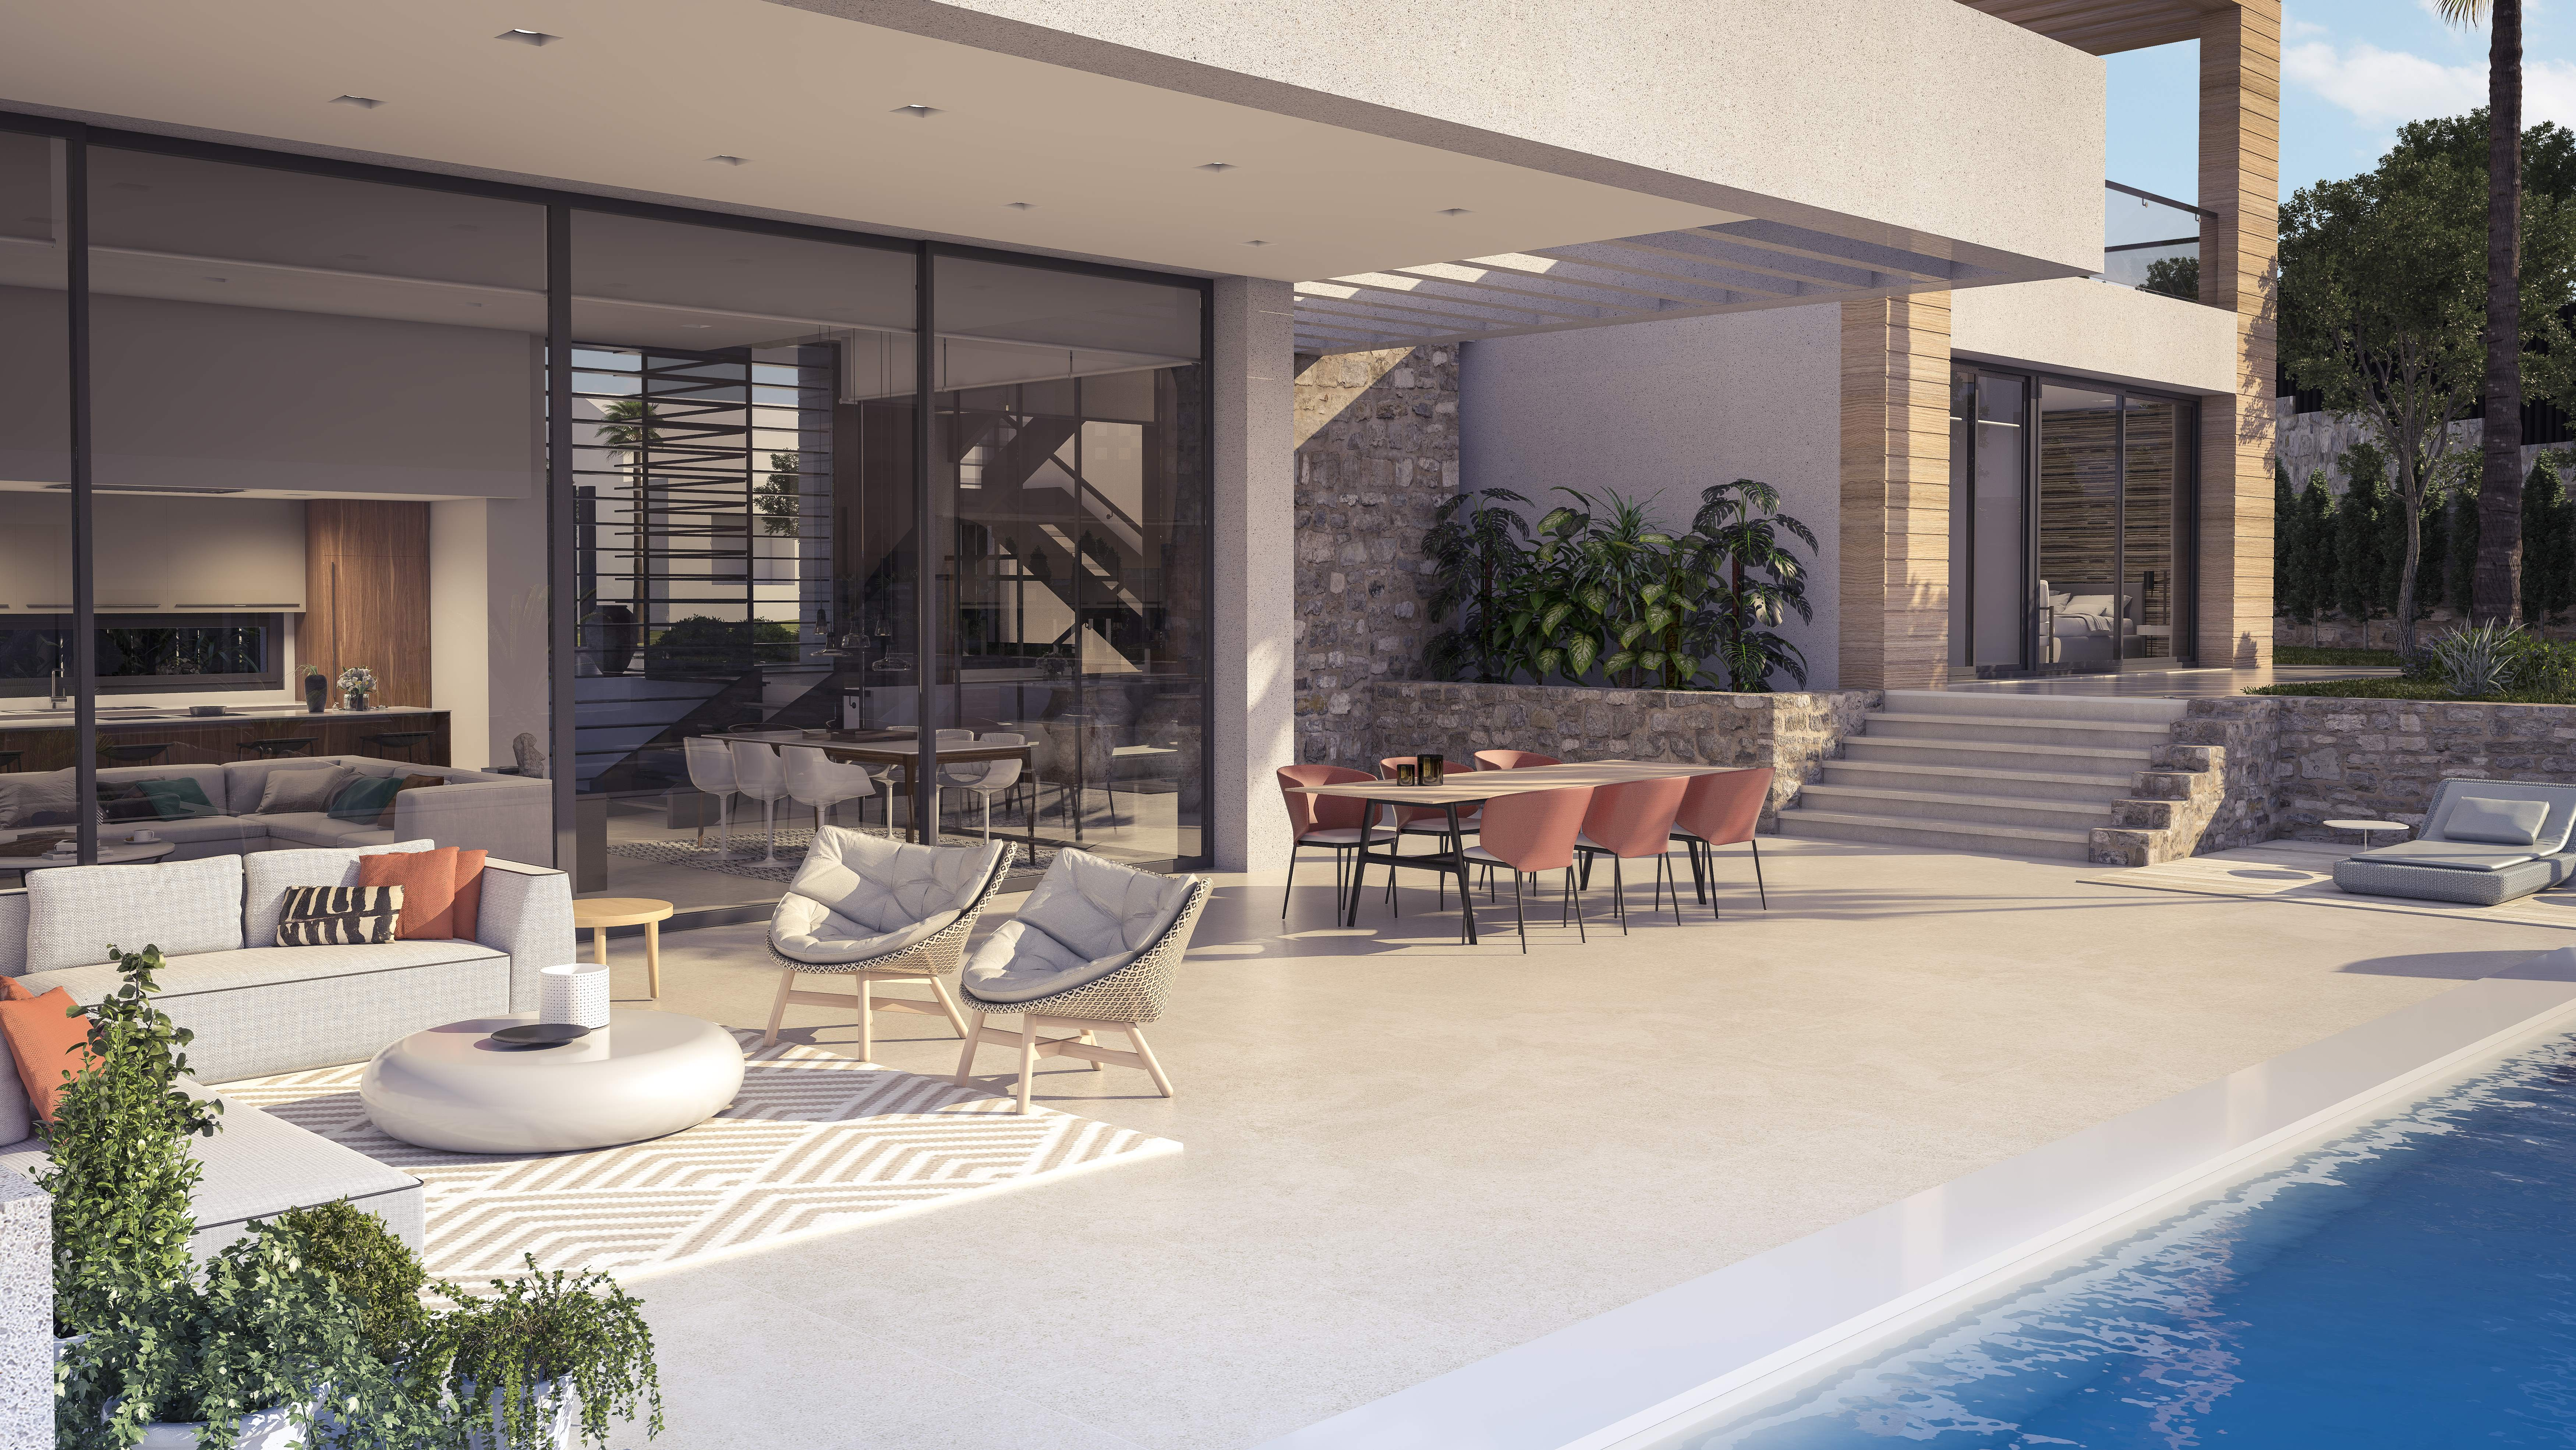 Terrace and pool area